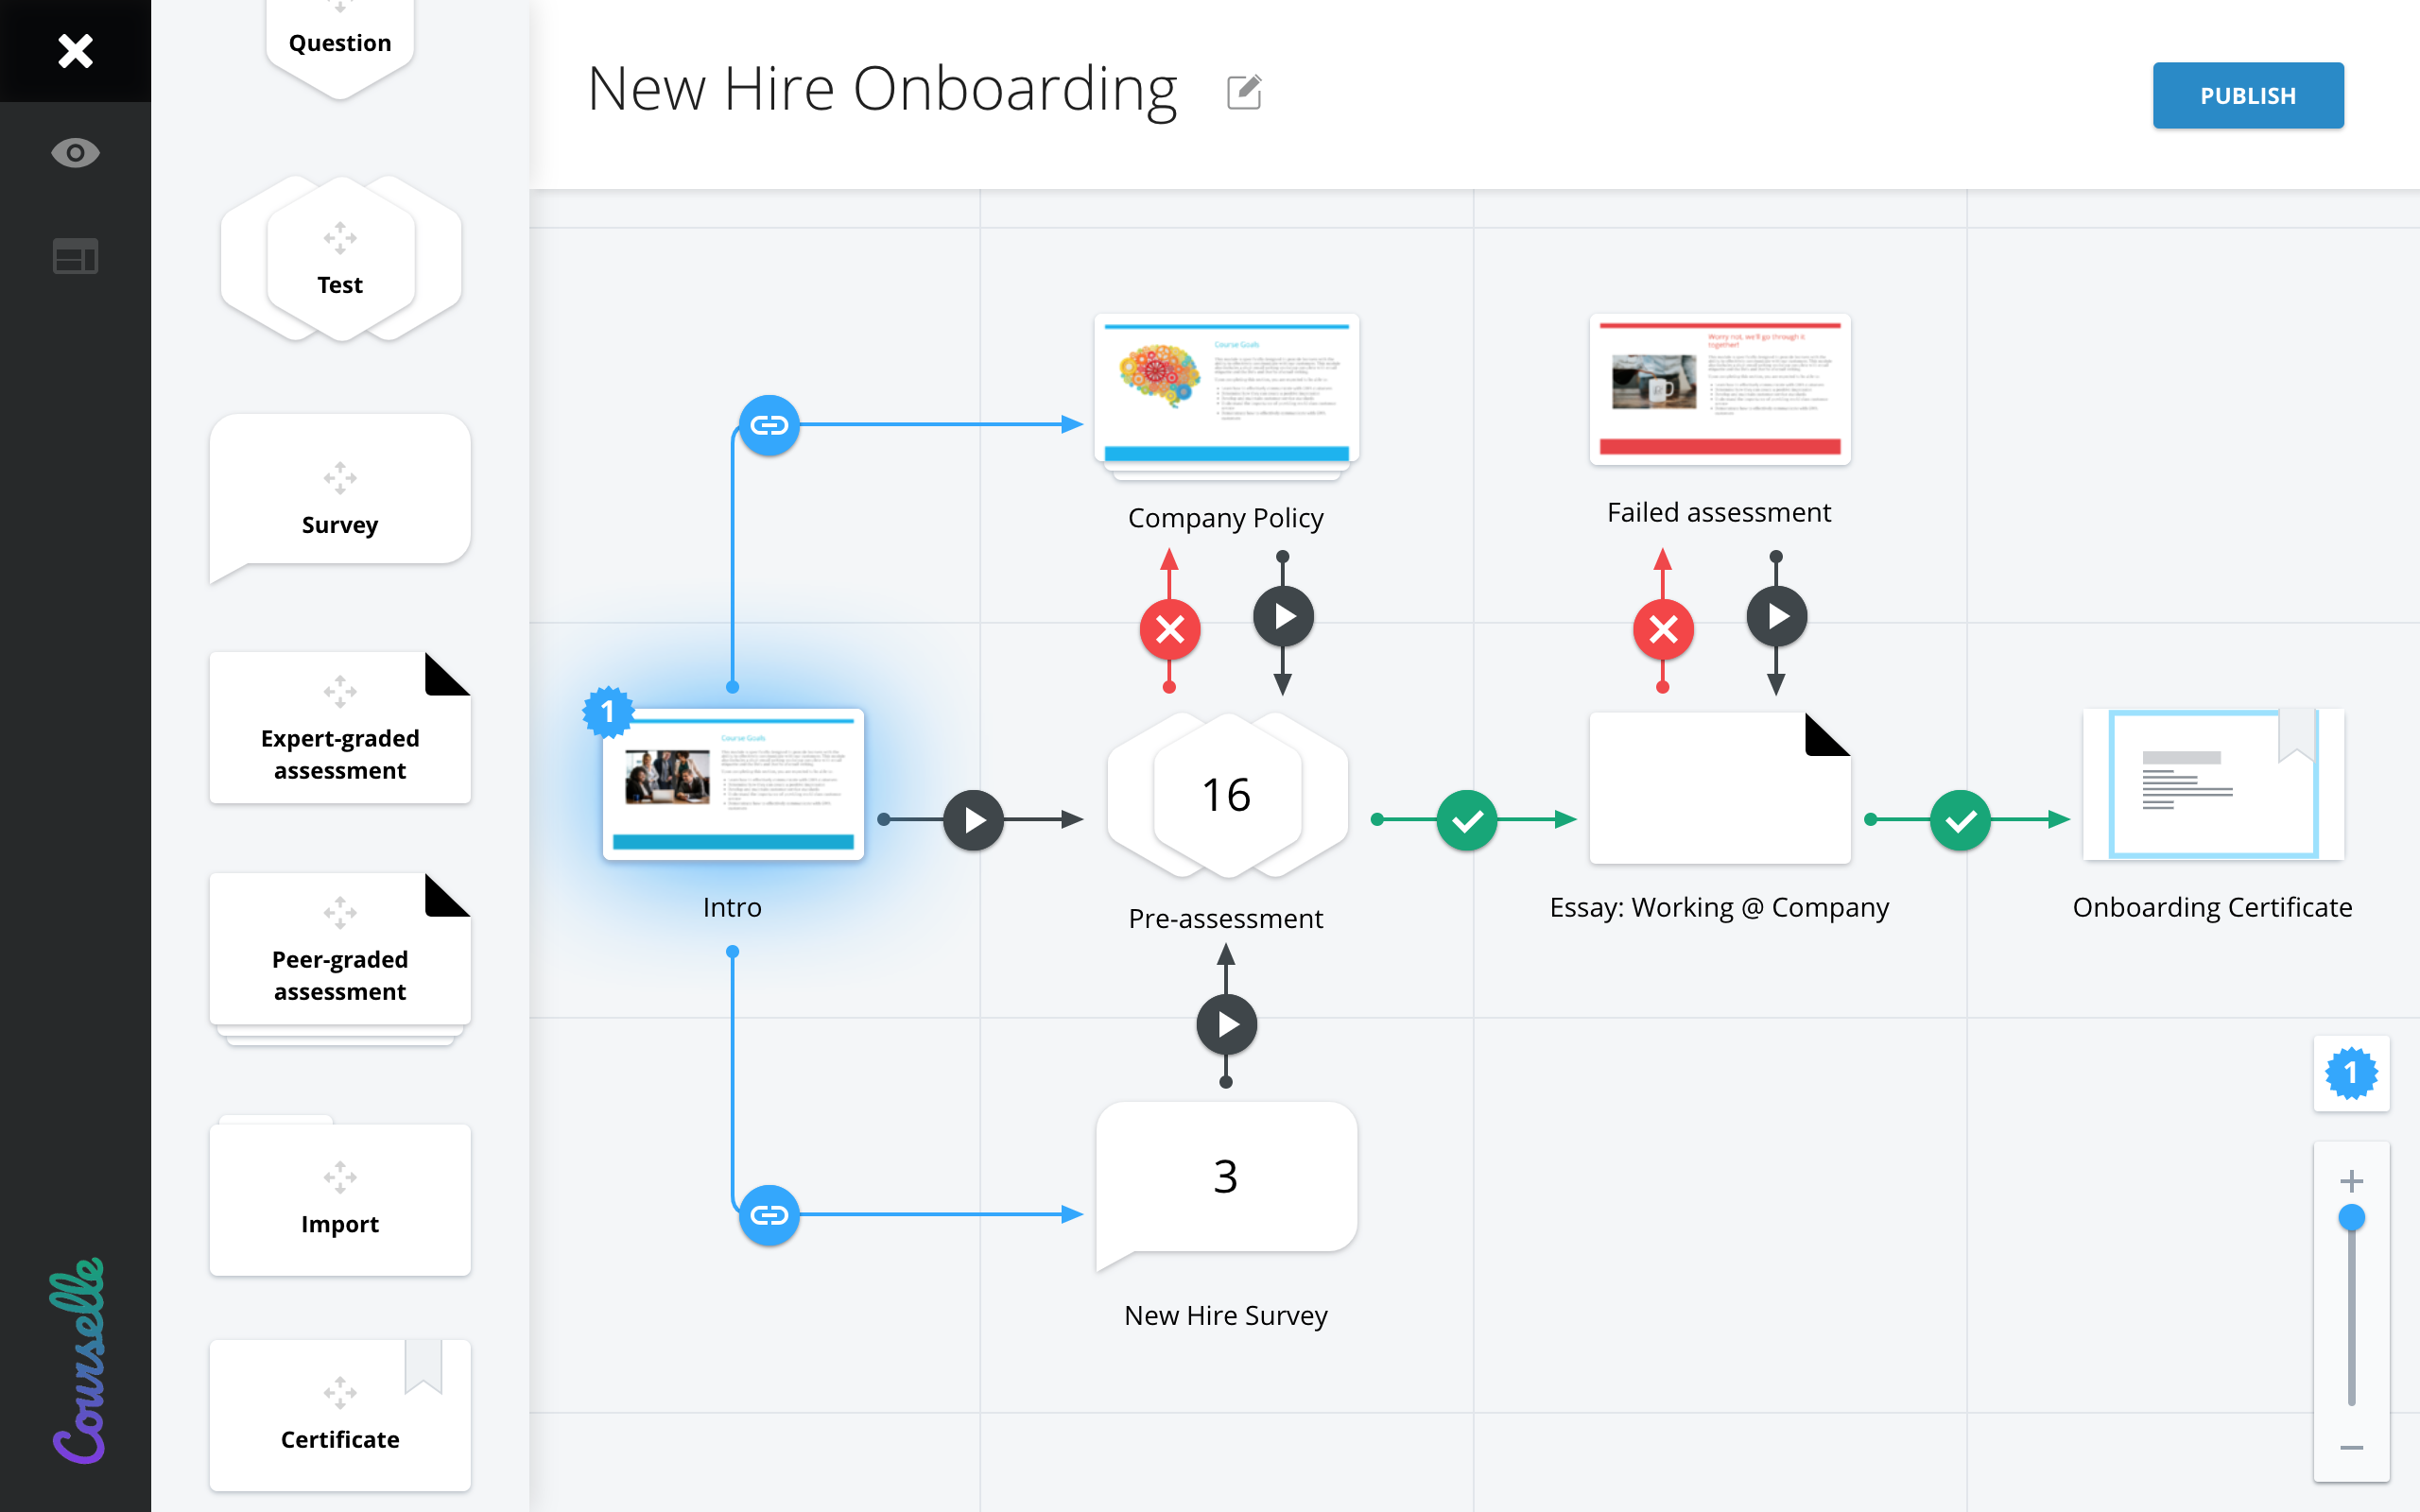 Geenio screenshot: Visual drag and drop course map builder allows to plan the flow of the online training and link various types of activities into engaging learning experience.